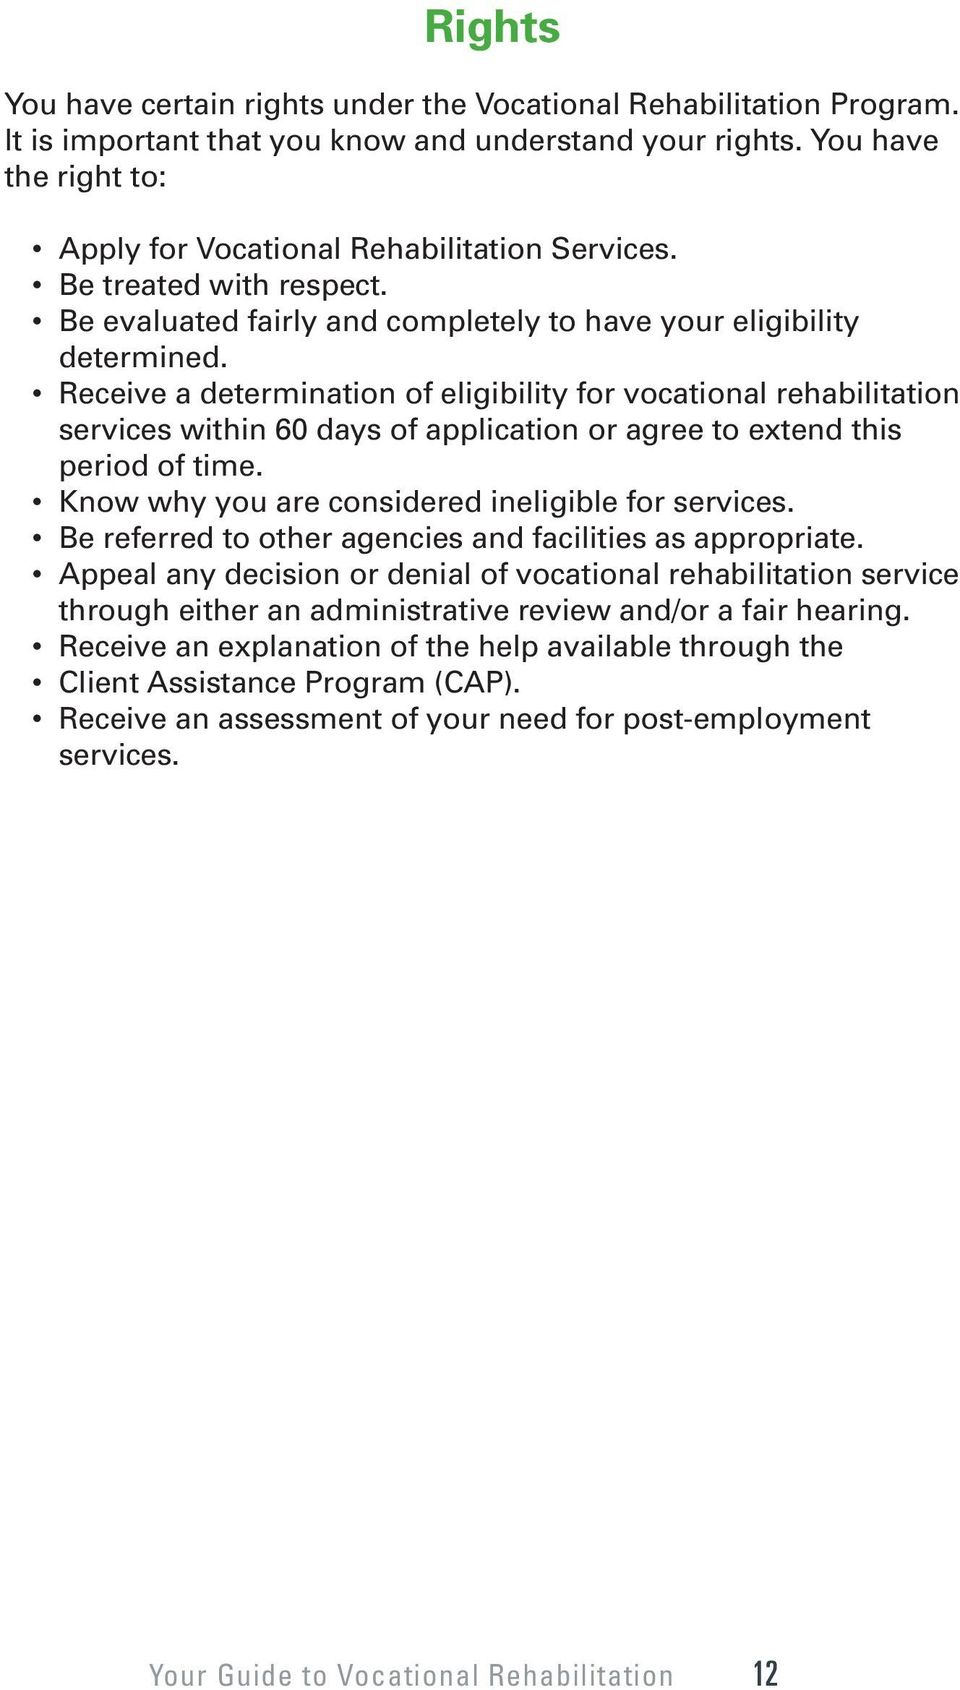 Receive a determination of eligibility for vocational rehabilitation services within 60 days of application or agree to extend this period of time. Know why you are considered ineligible for services.